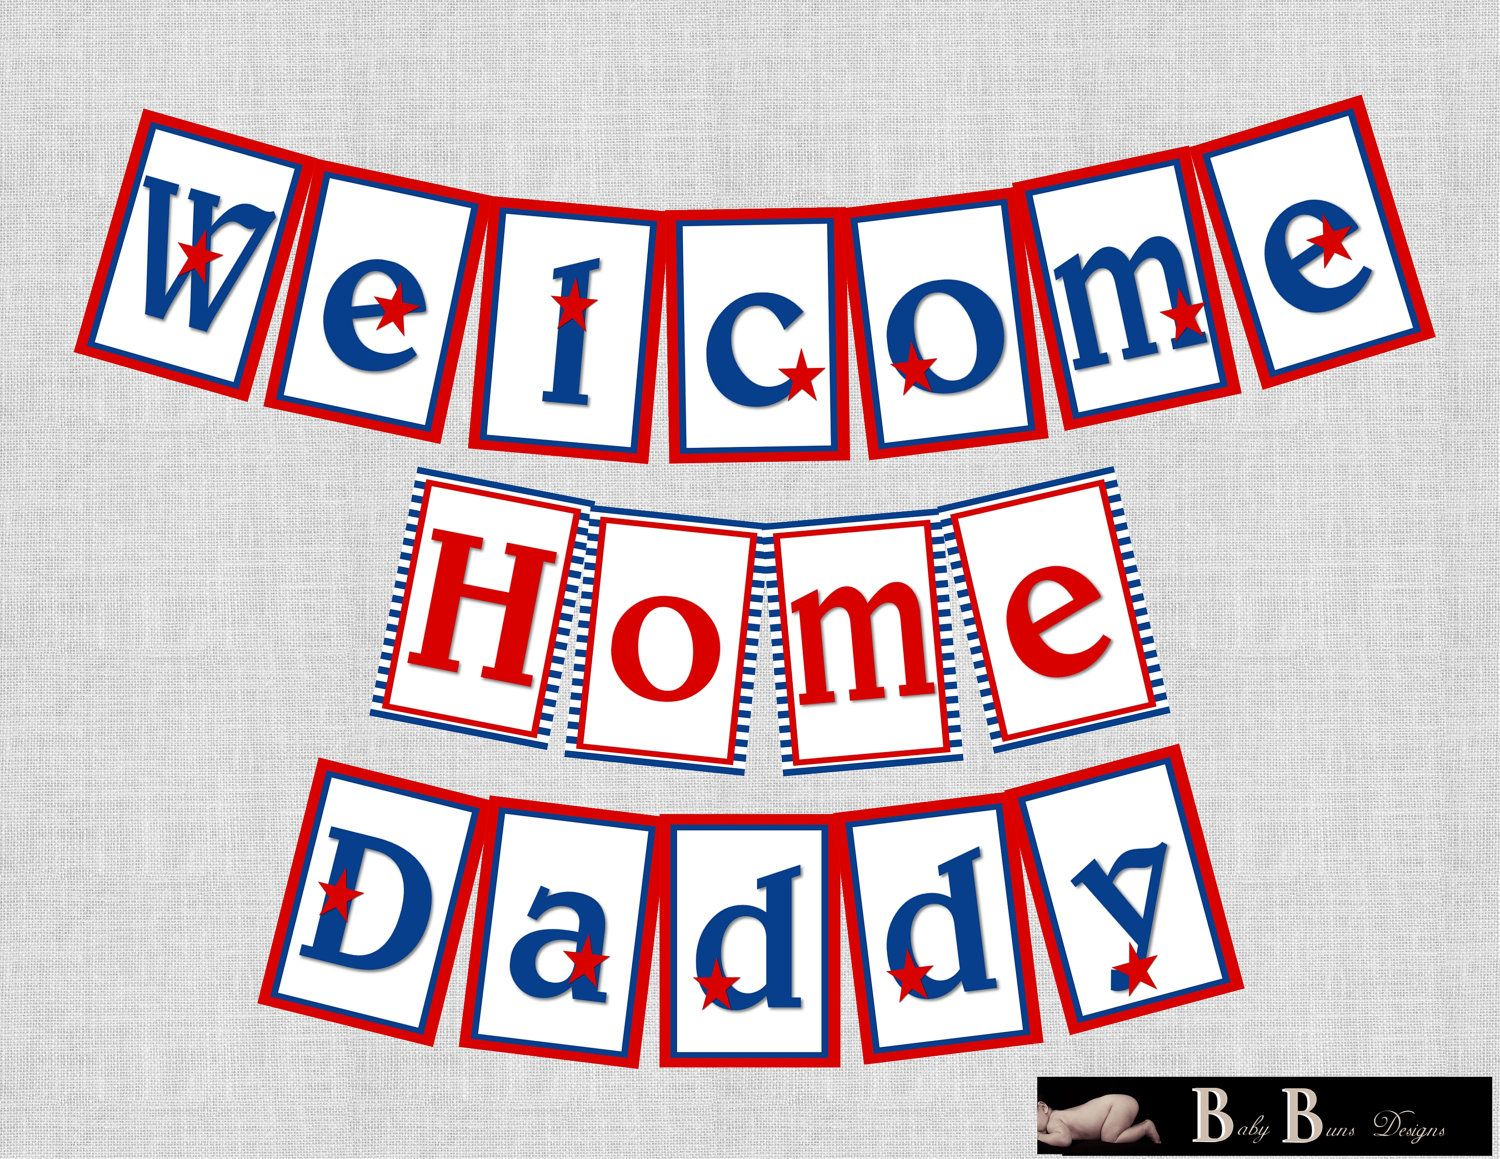 graphic about Welcome Home Banner Printable called Armed forces/Patriotic Welcome household/Homecoming Banner- Printable